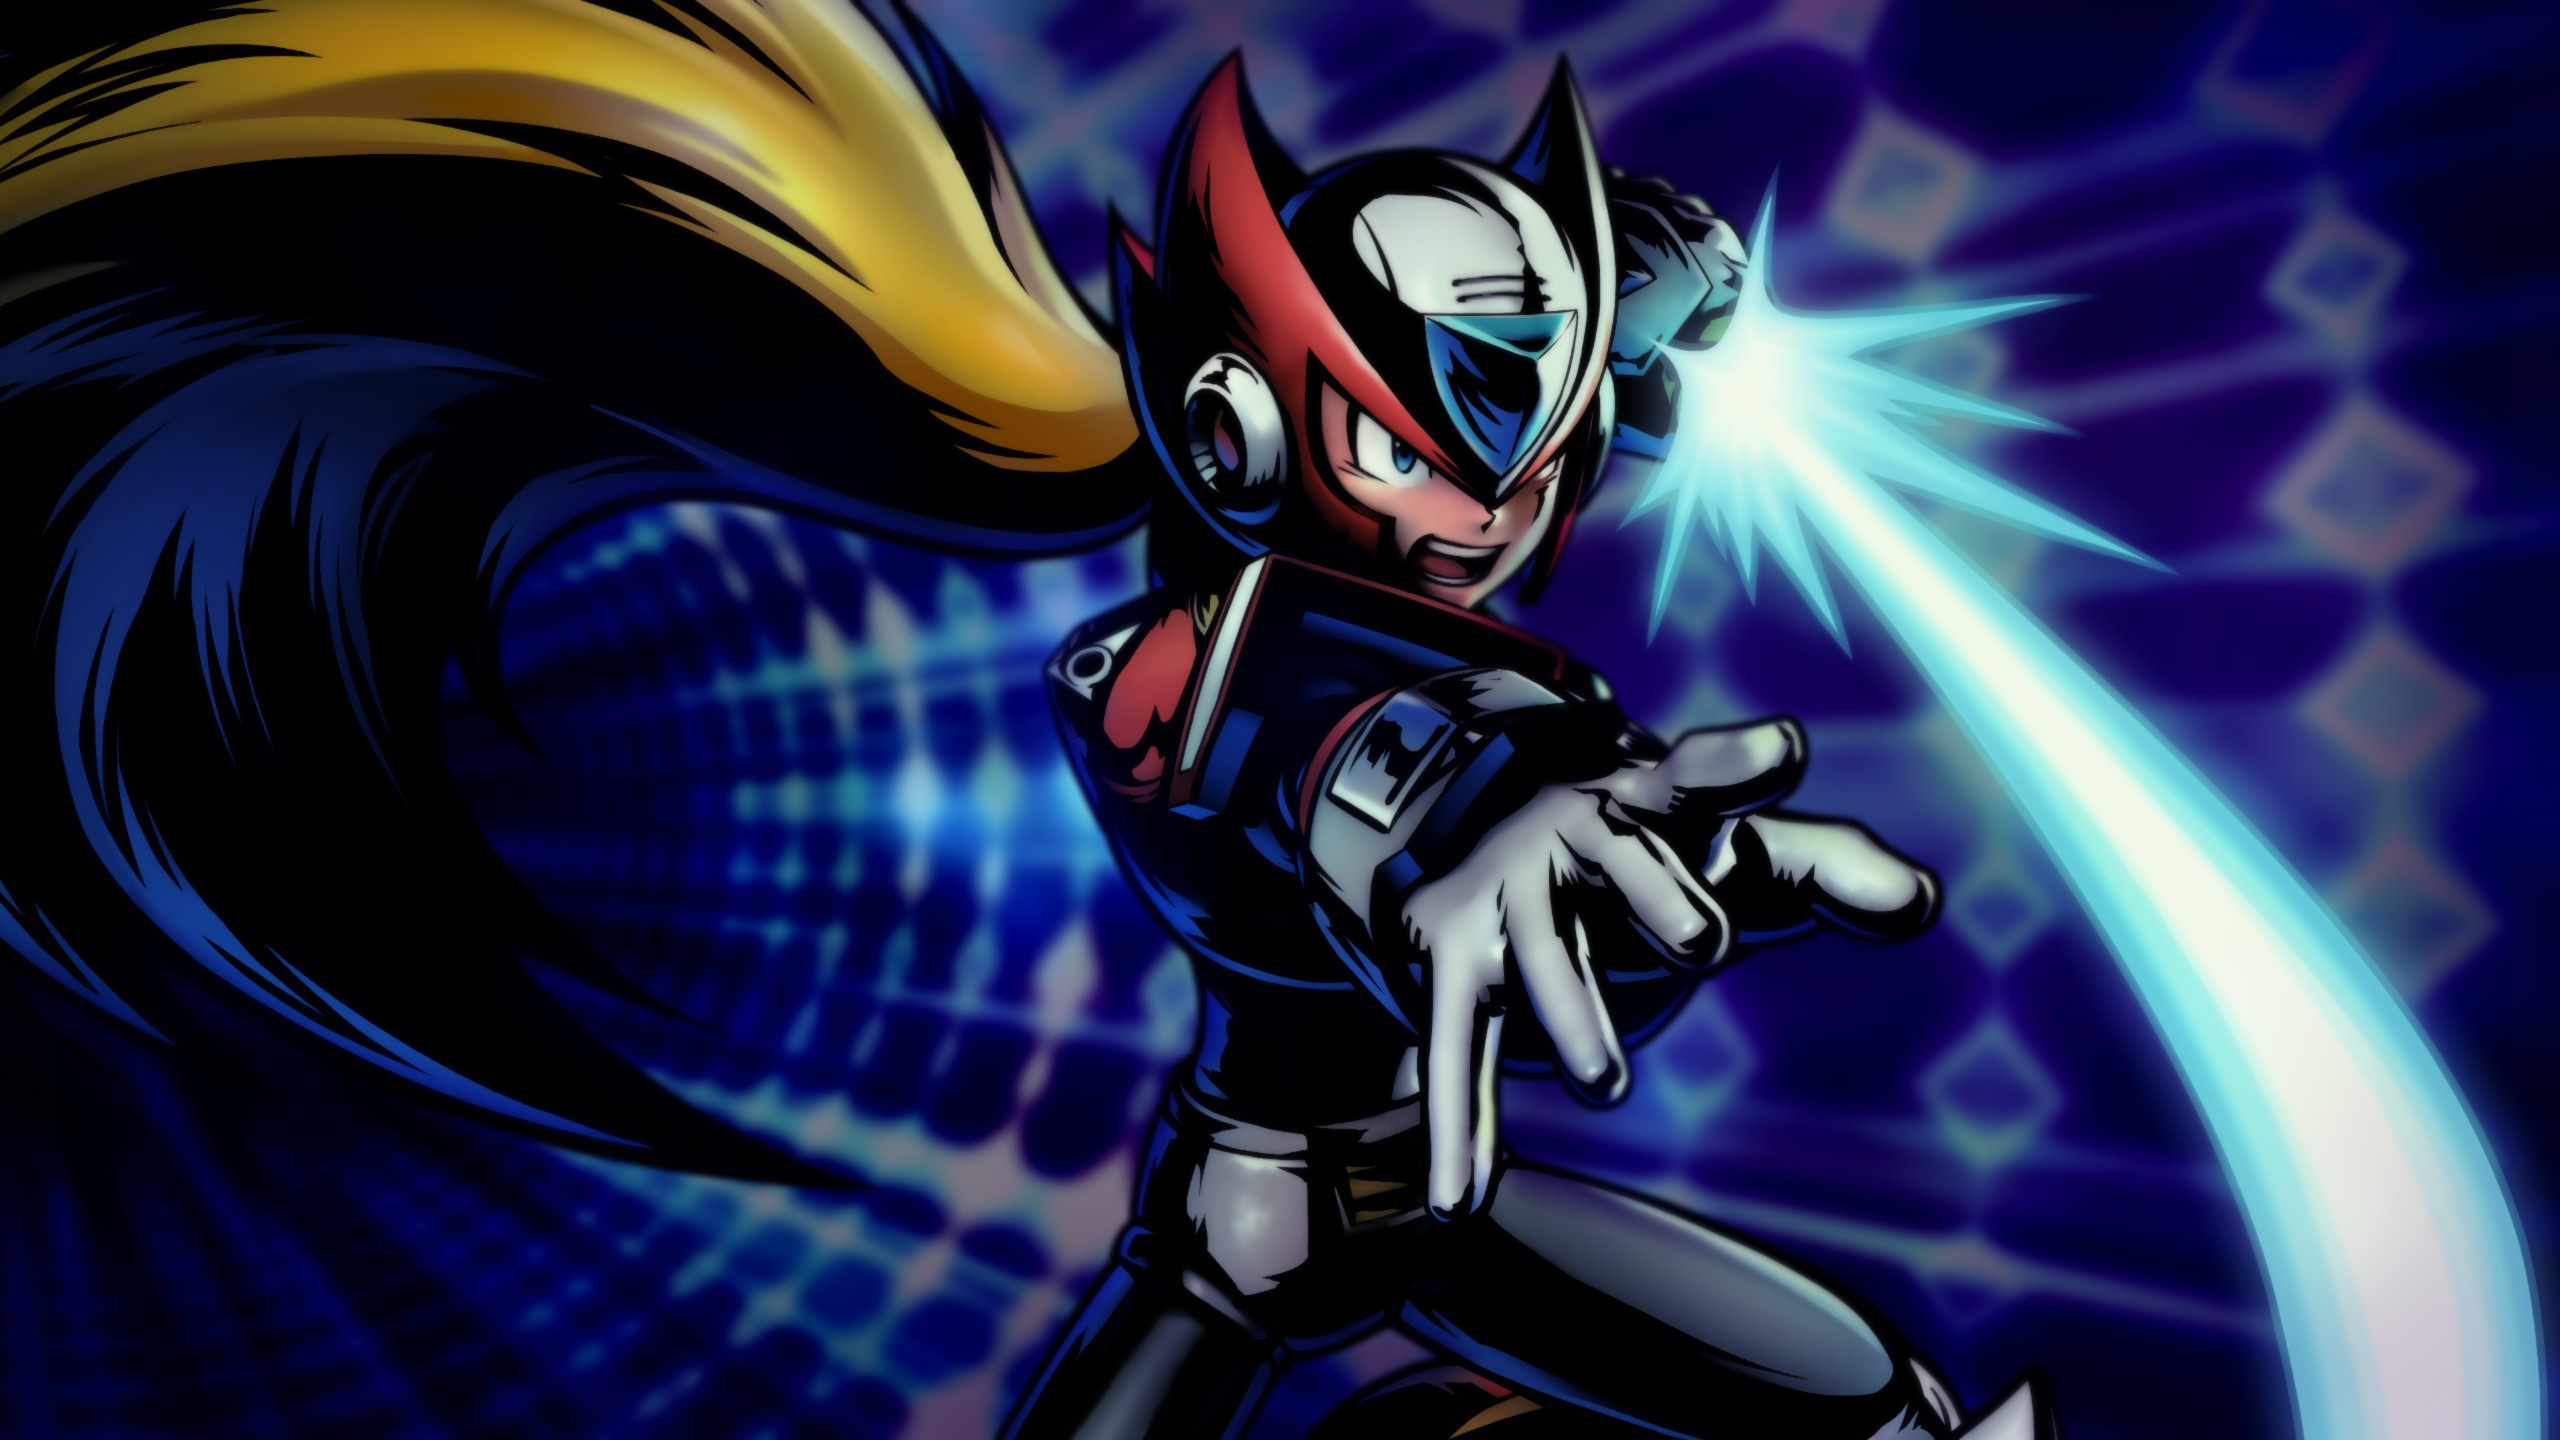 Megaman Wallpapers (68+ background pictures)